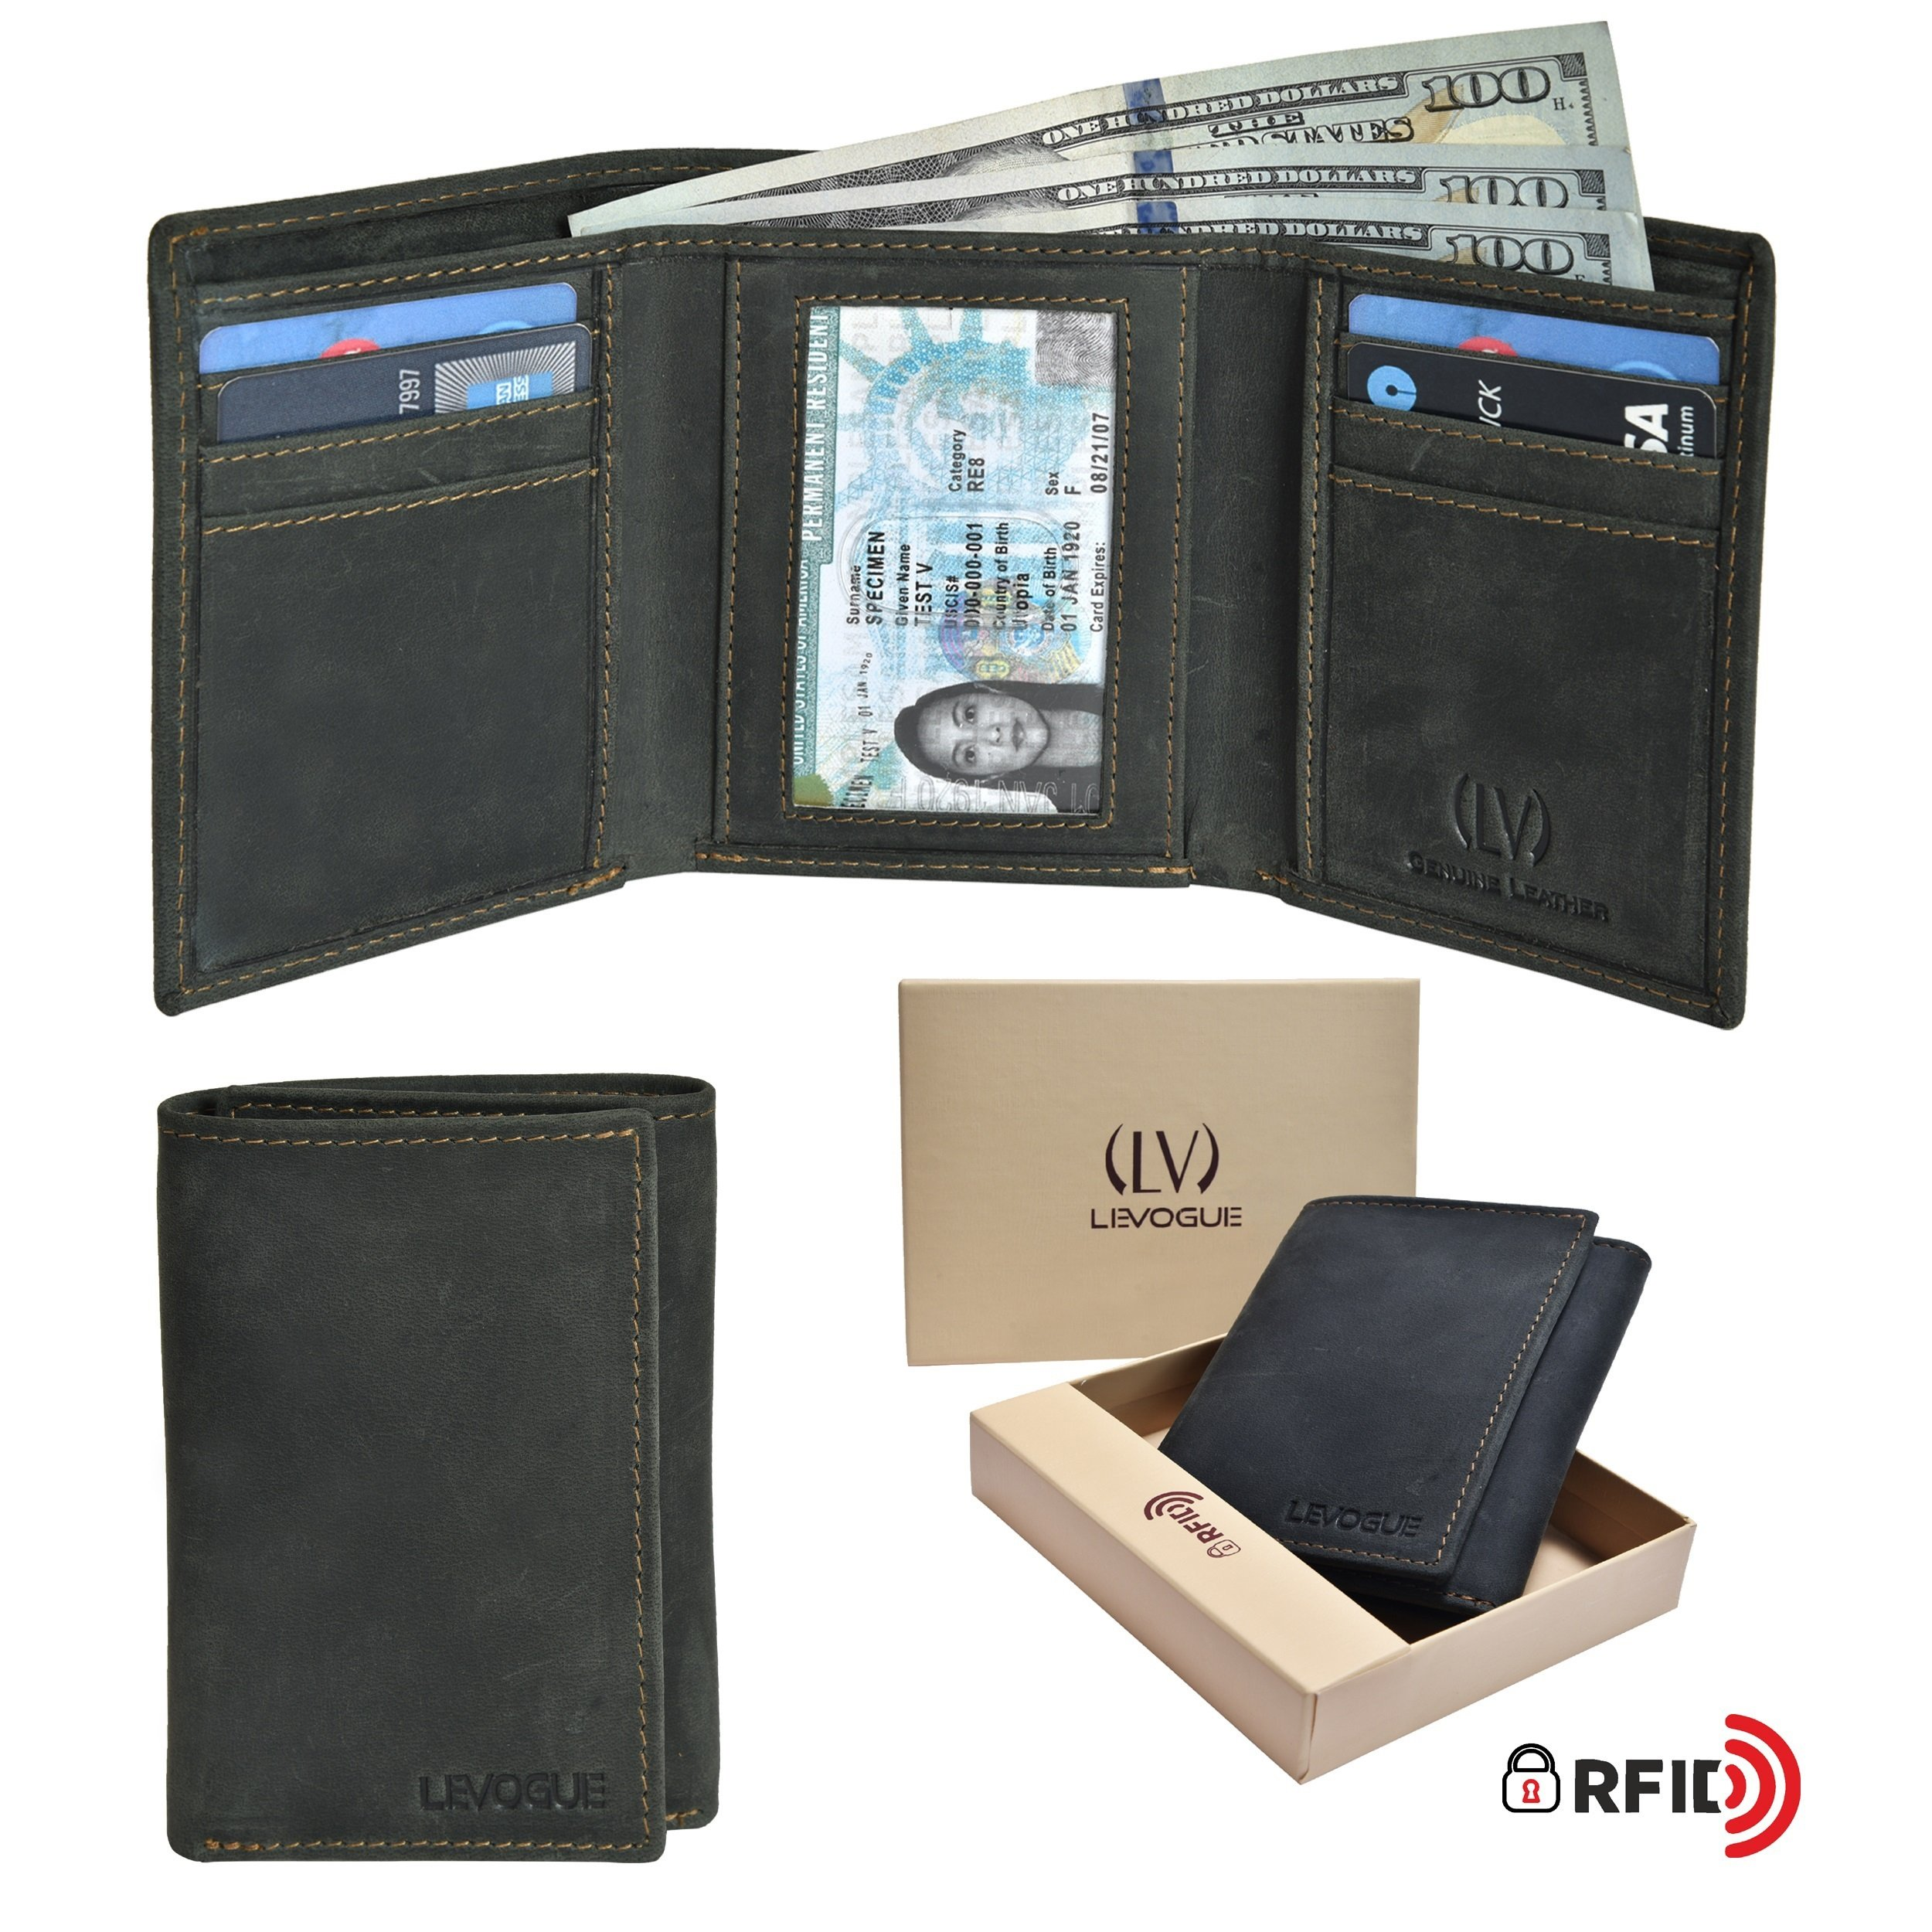 Genuine Leather Handmade Mens RFID Blocking Slim Trifold Wallet with 6 Credit Card + 1 ID Window + 2 Note Compartments Wallet Made from 100% Full Grain Cow Leather by LEVOGUE